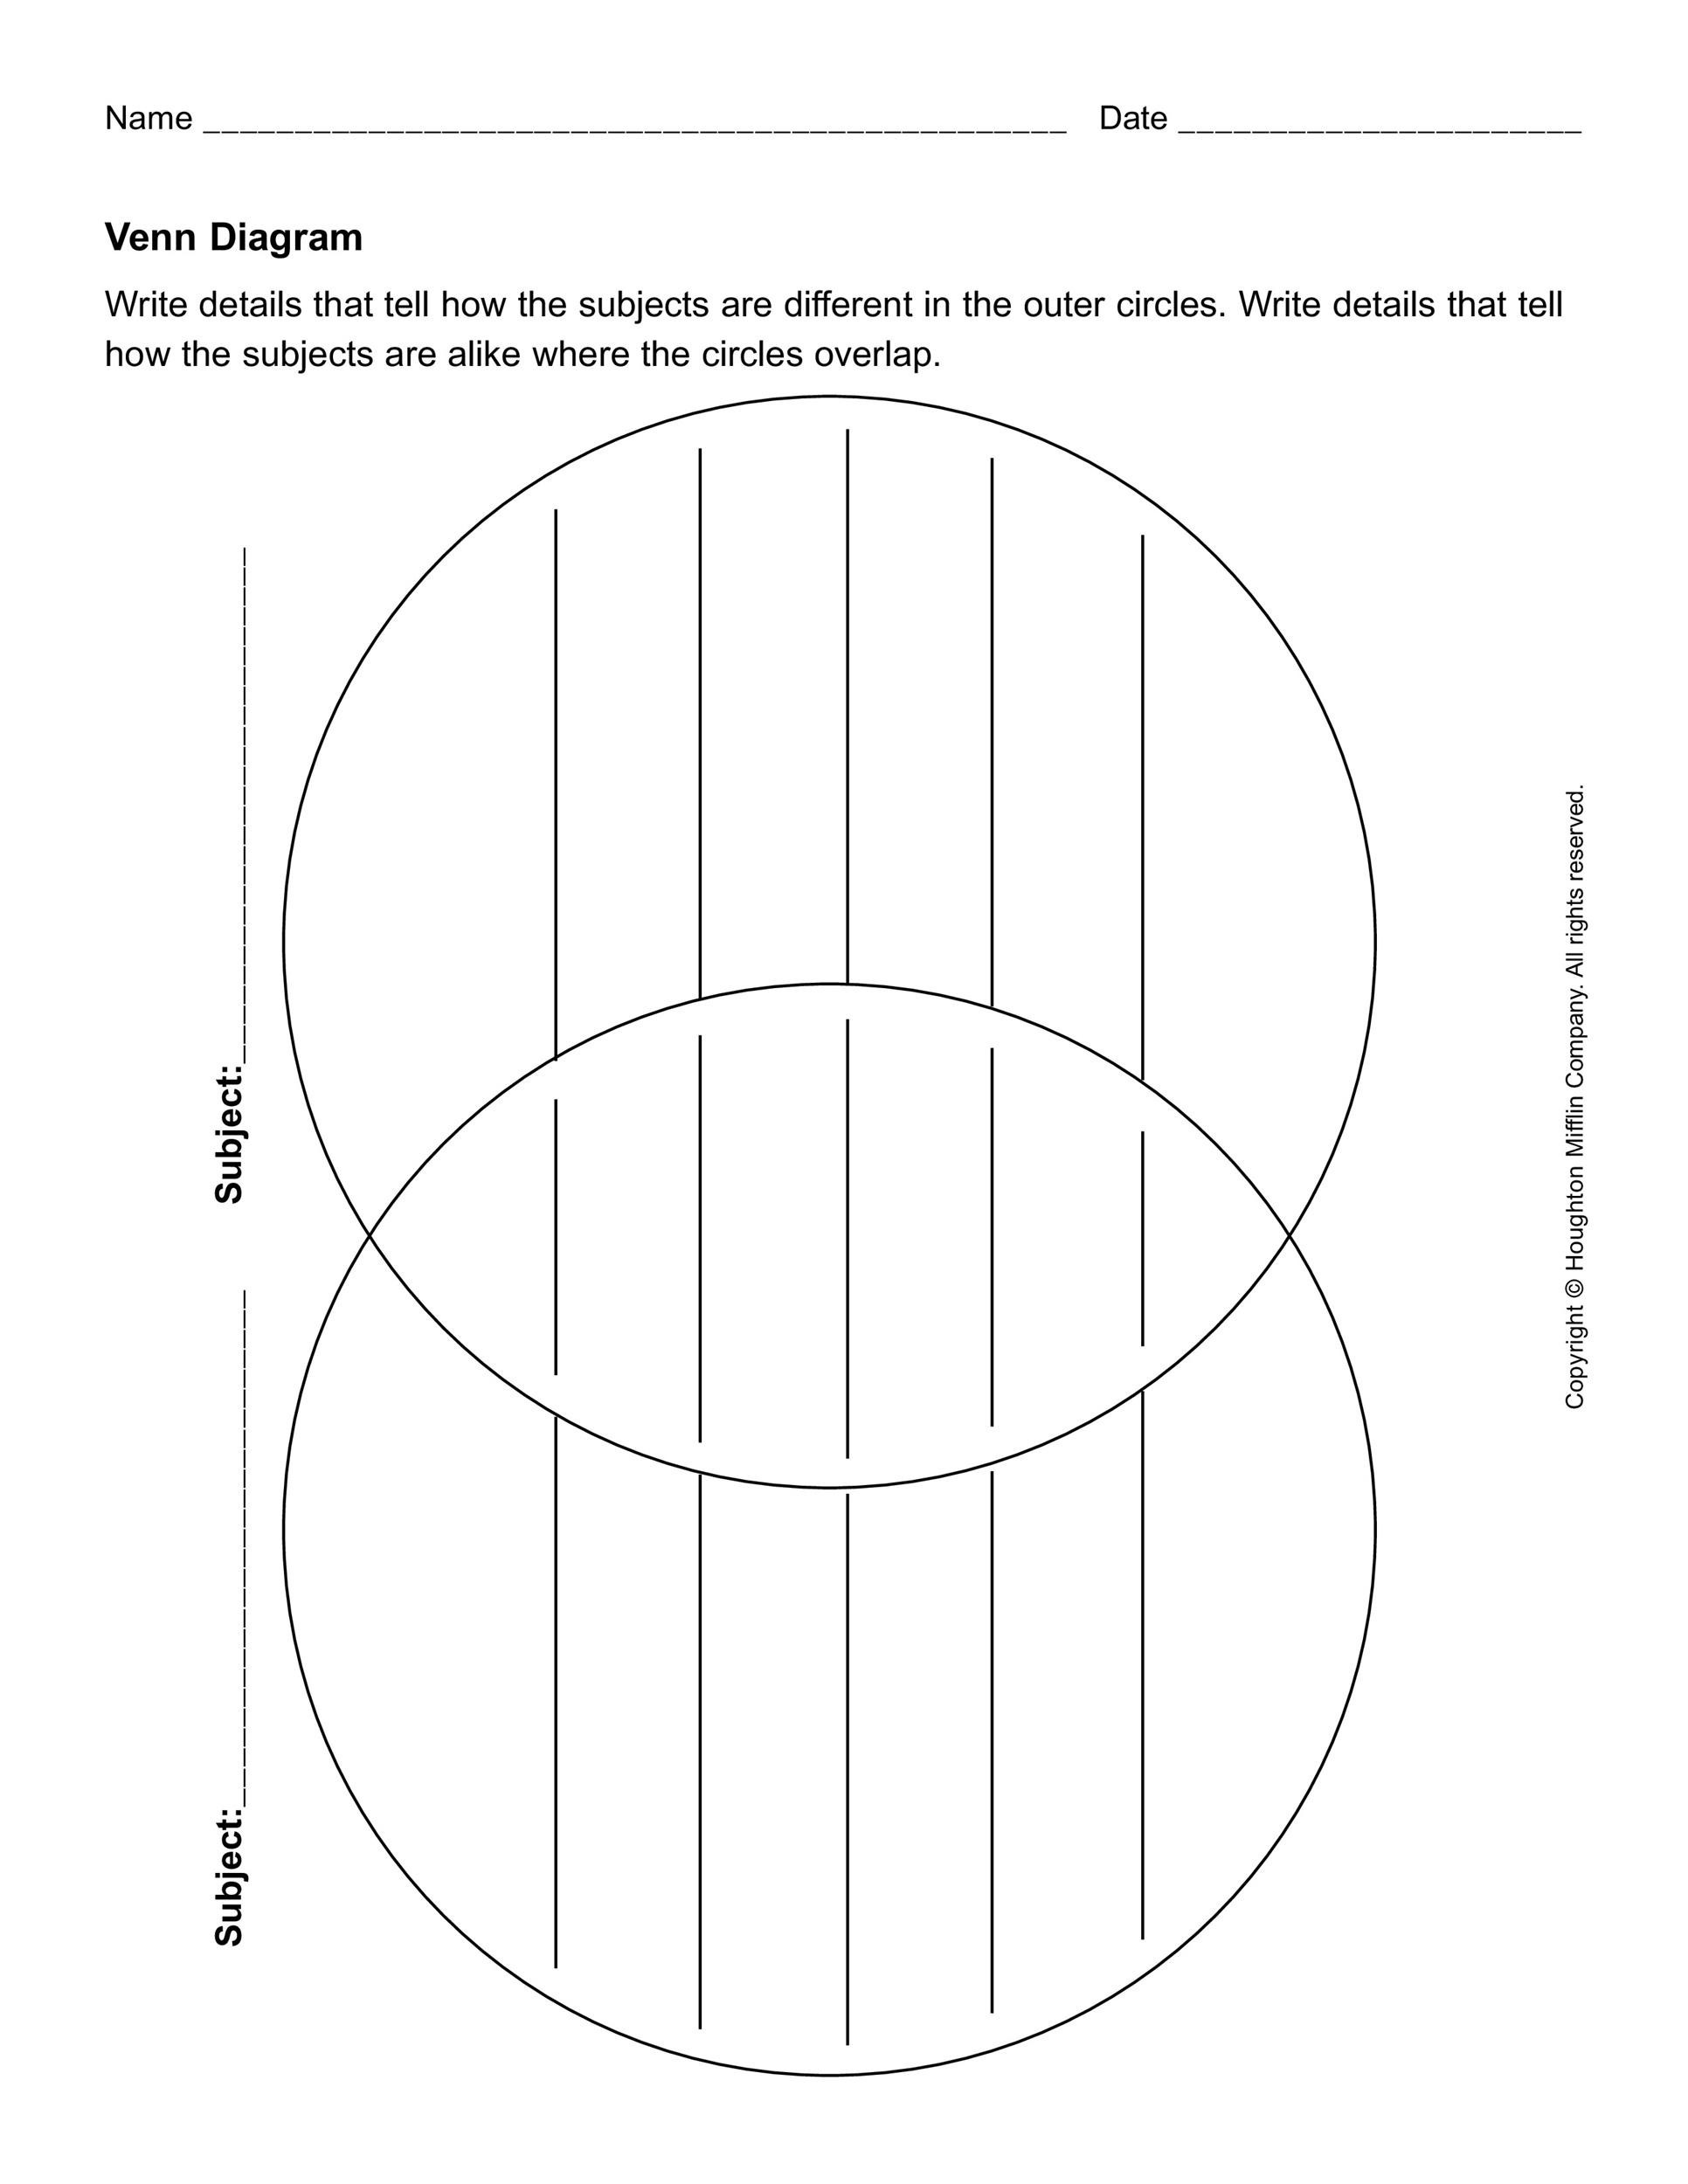 40 Free Venn Diagram Templates Word Templatelab